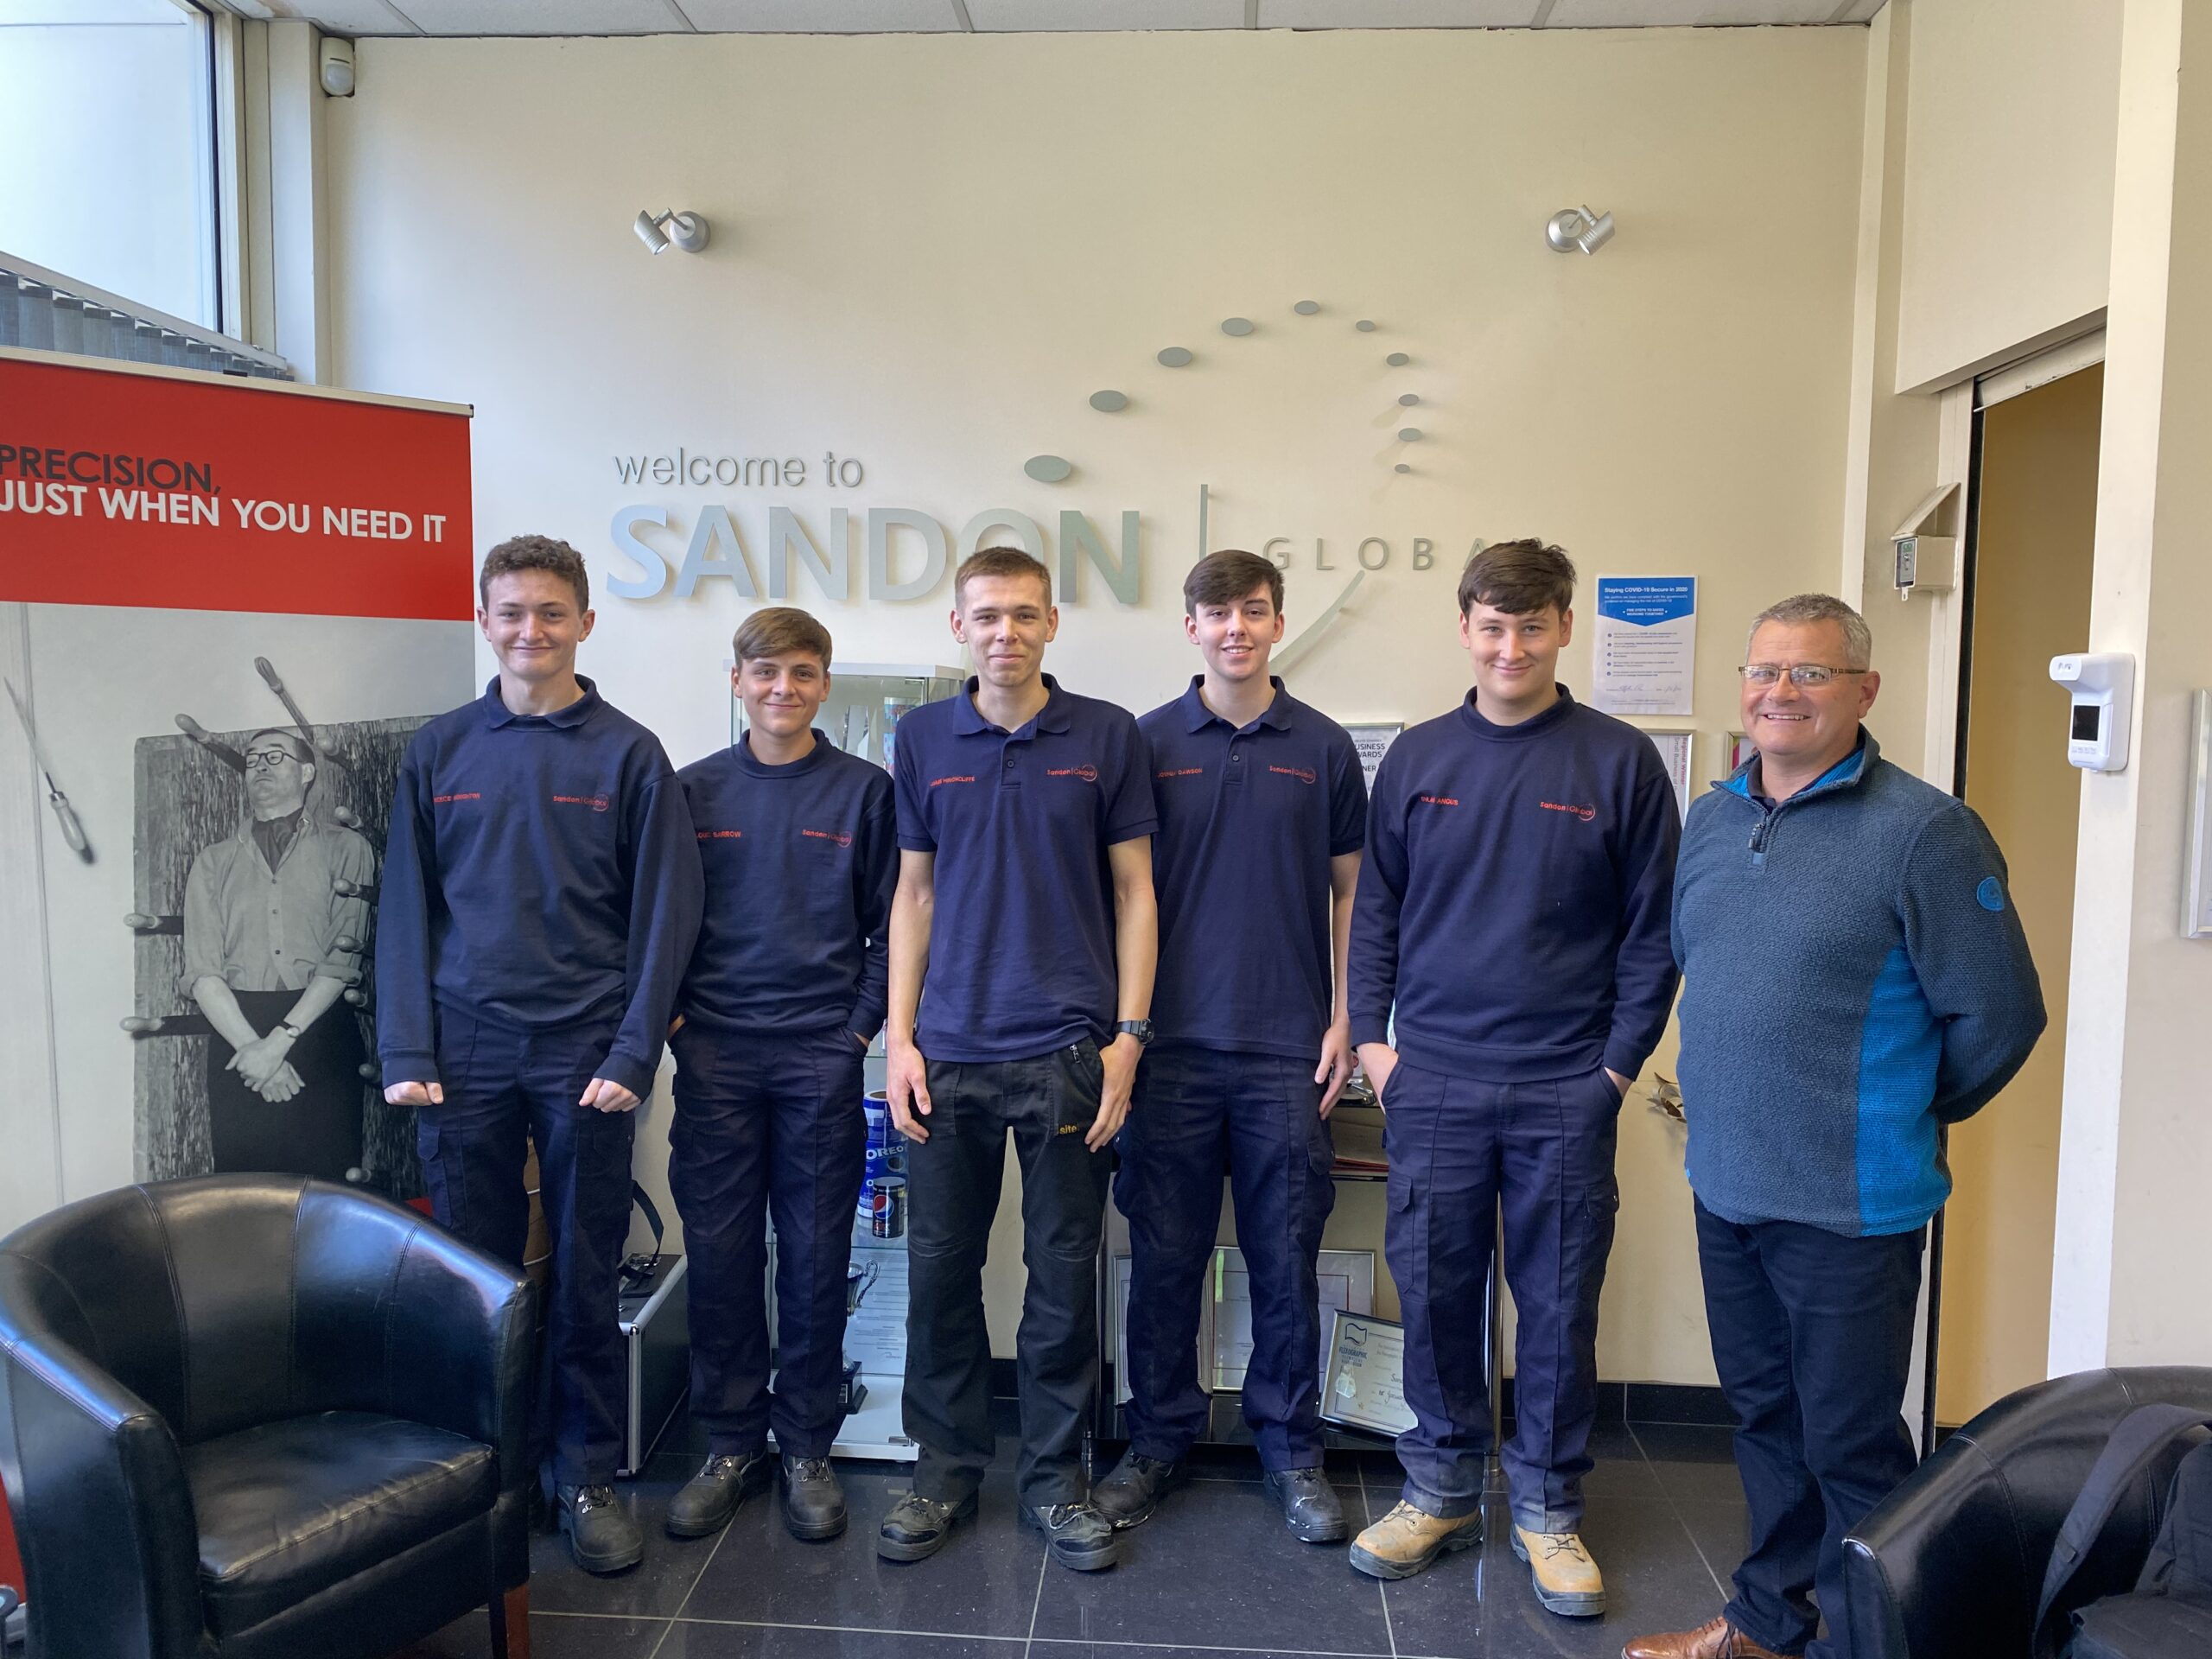 Apprentices: Reece Houghton, Louis Barrow, Jamie Hinchcliffe, Joshua Dawson, Dylan Angus and Operations Manager: Gary Carmichael